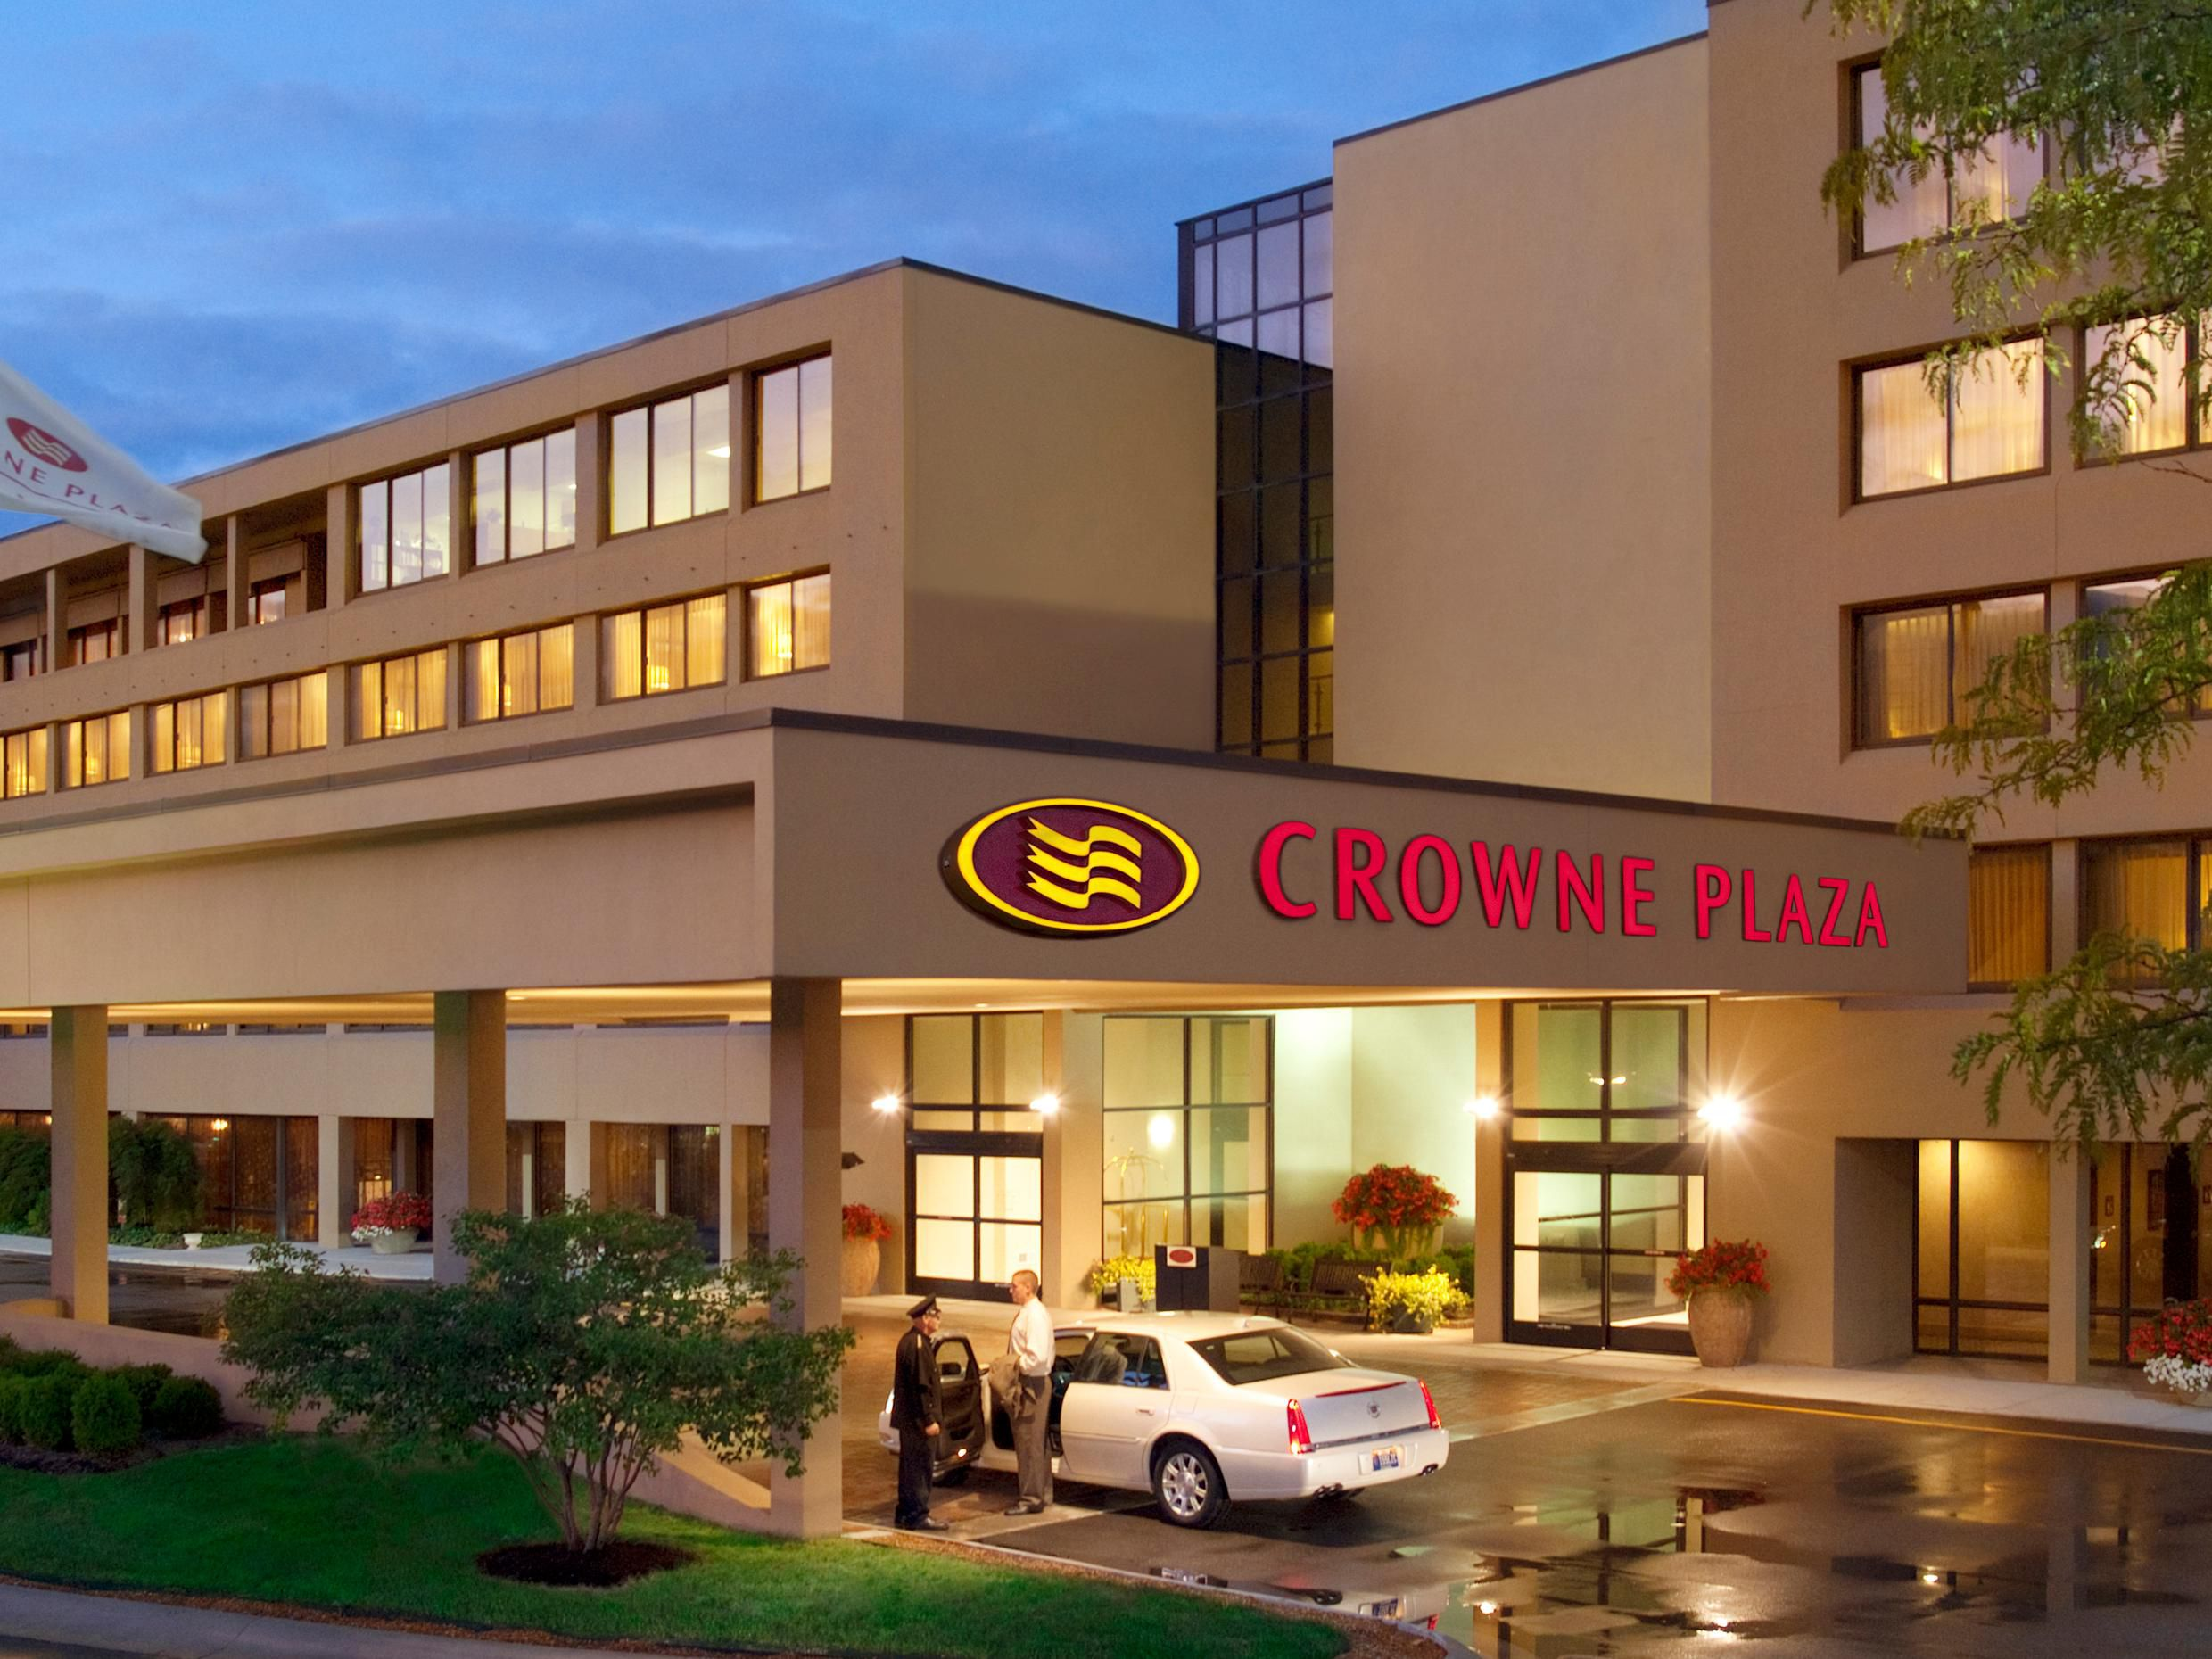 Airport Plaza Inn Crowne Plaza Indianapolis Airport Indianapolis Indiana